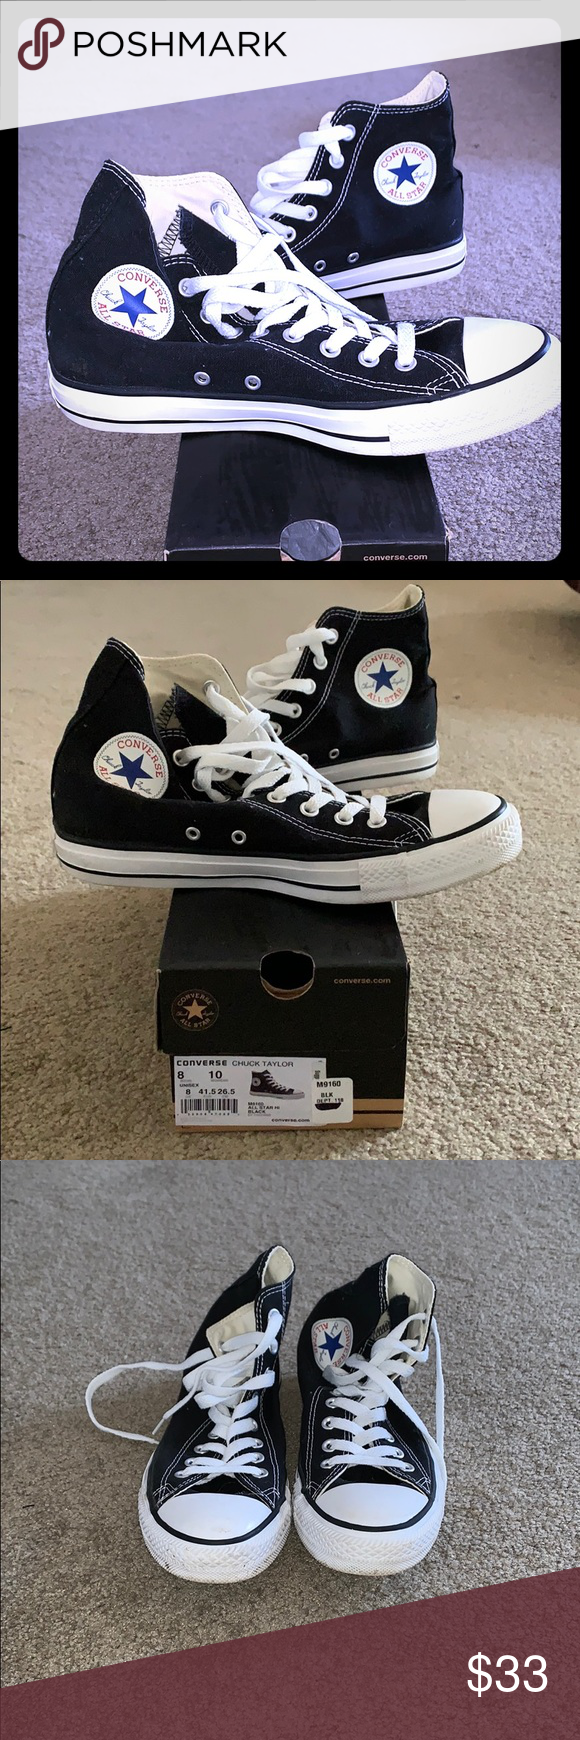 83f84457492b Converse sneakers Men s black high top converse sneakers. Worn twice! In  good condition.